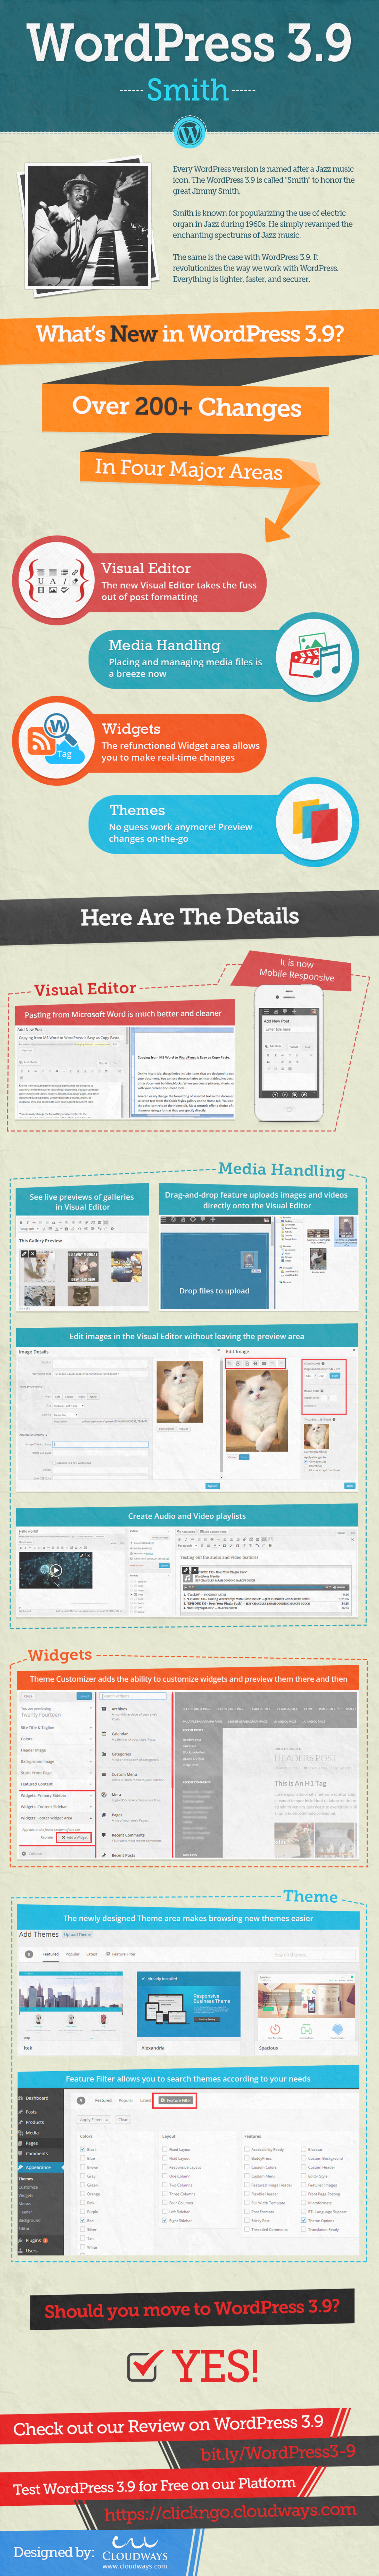 WordPress 3.9 Features Infographic